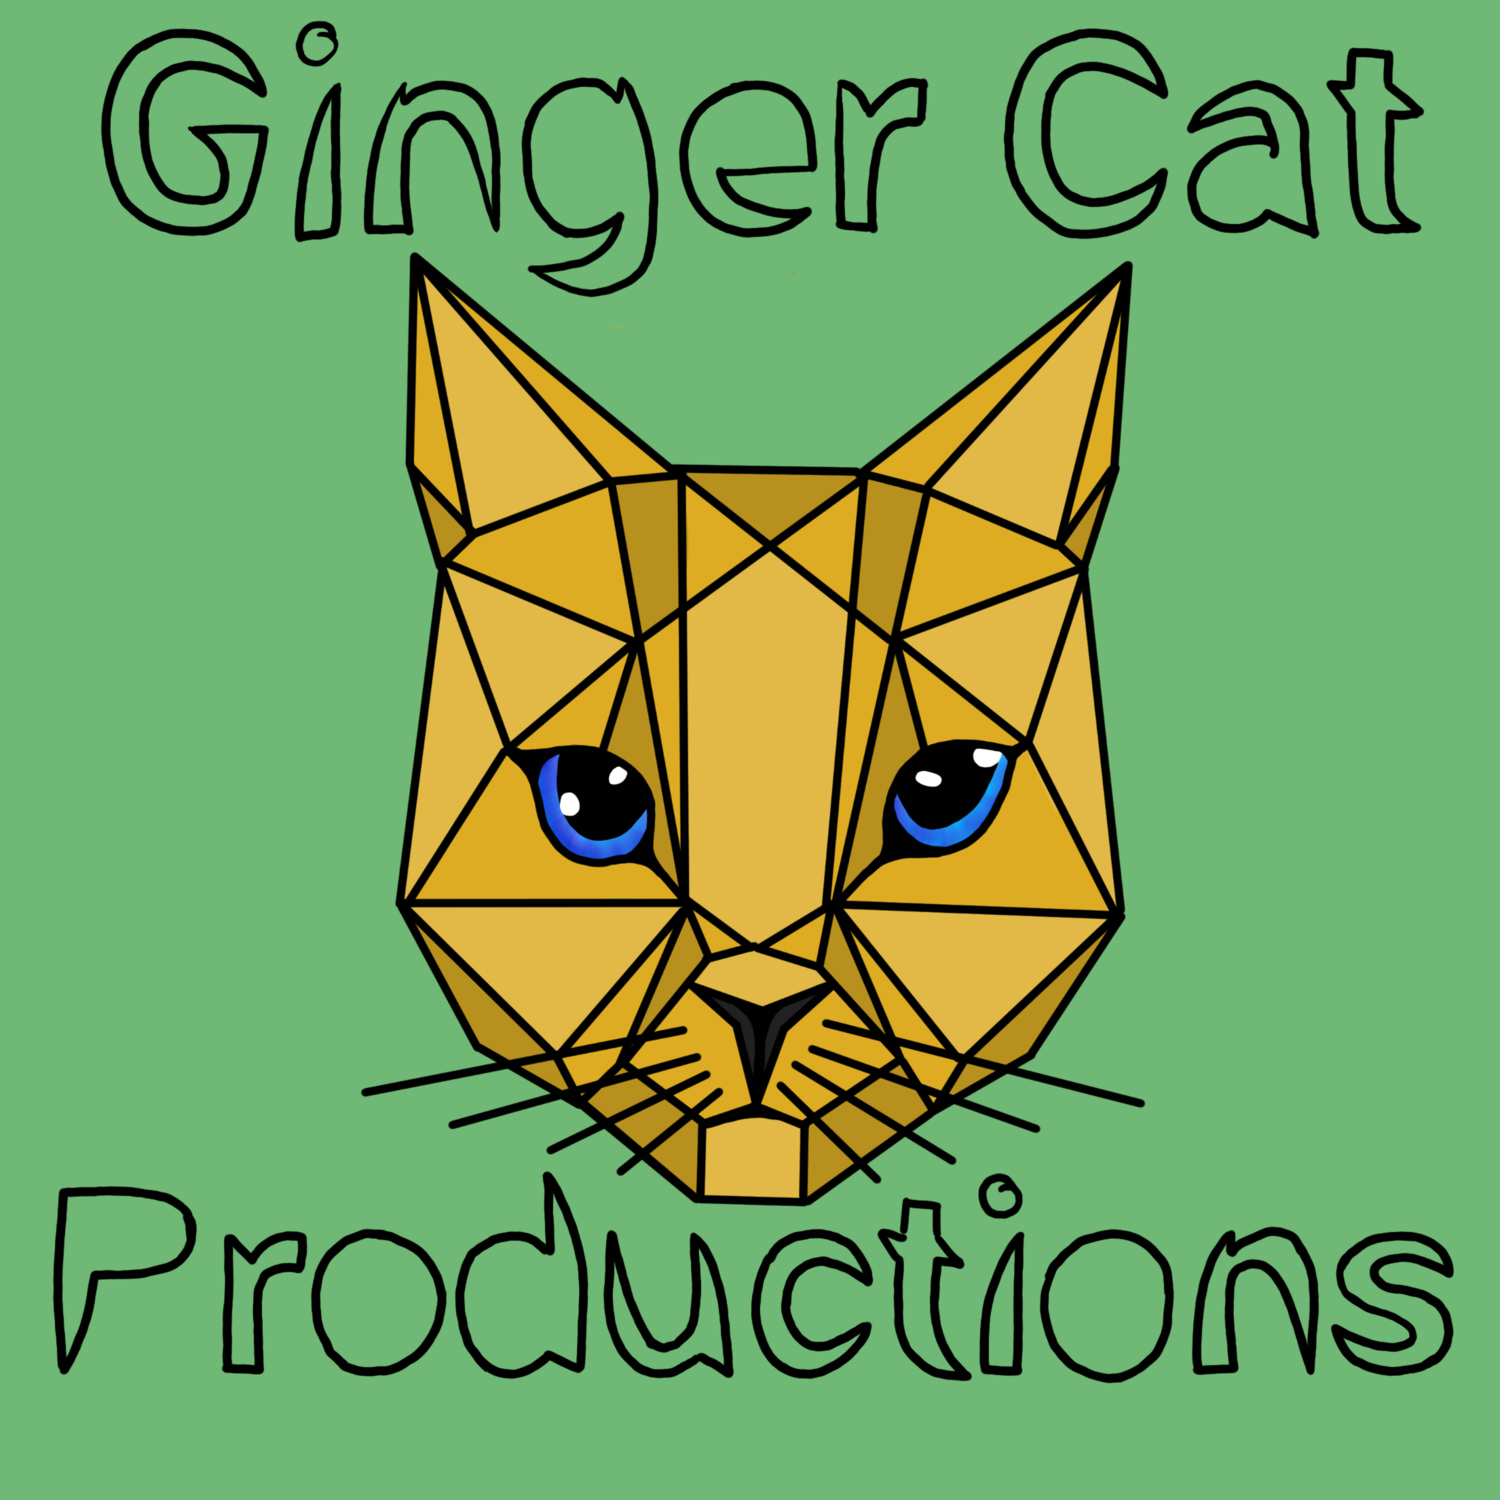 Ginger Cat Production